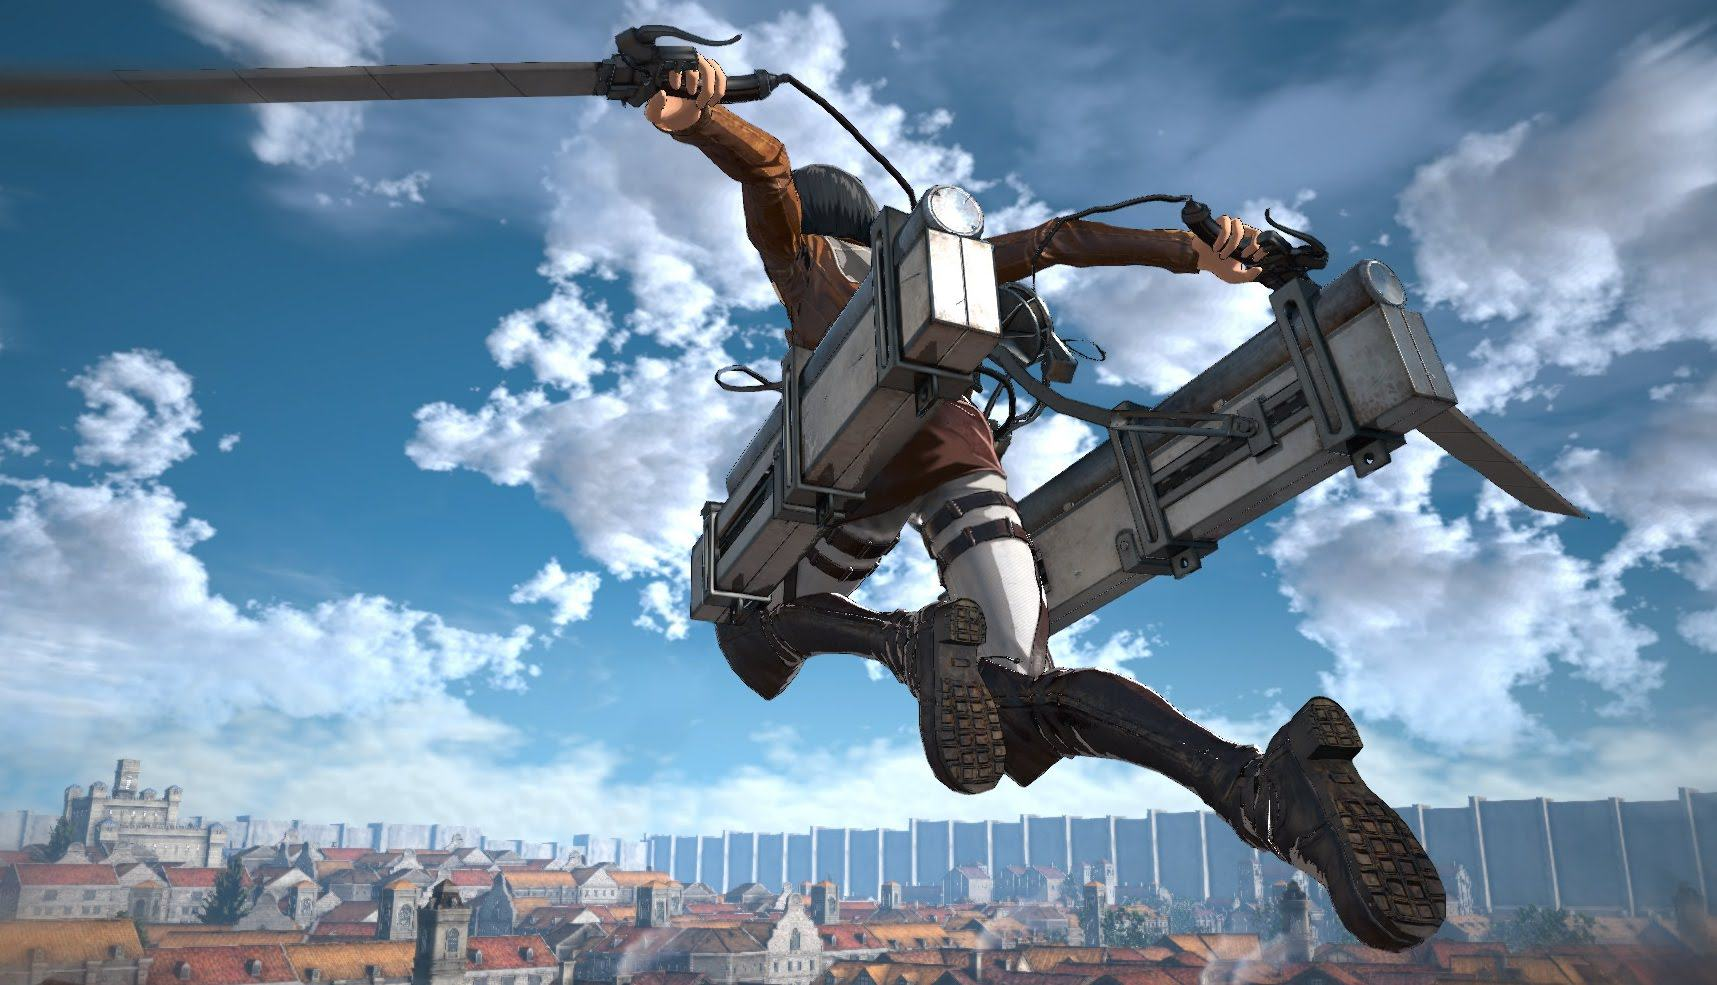 New Attack On Titan Trailer Showcases A Ton Of Awesome Gameplay maxresdefault 2 1